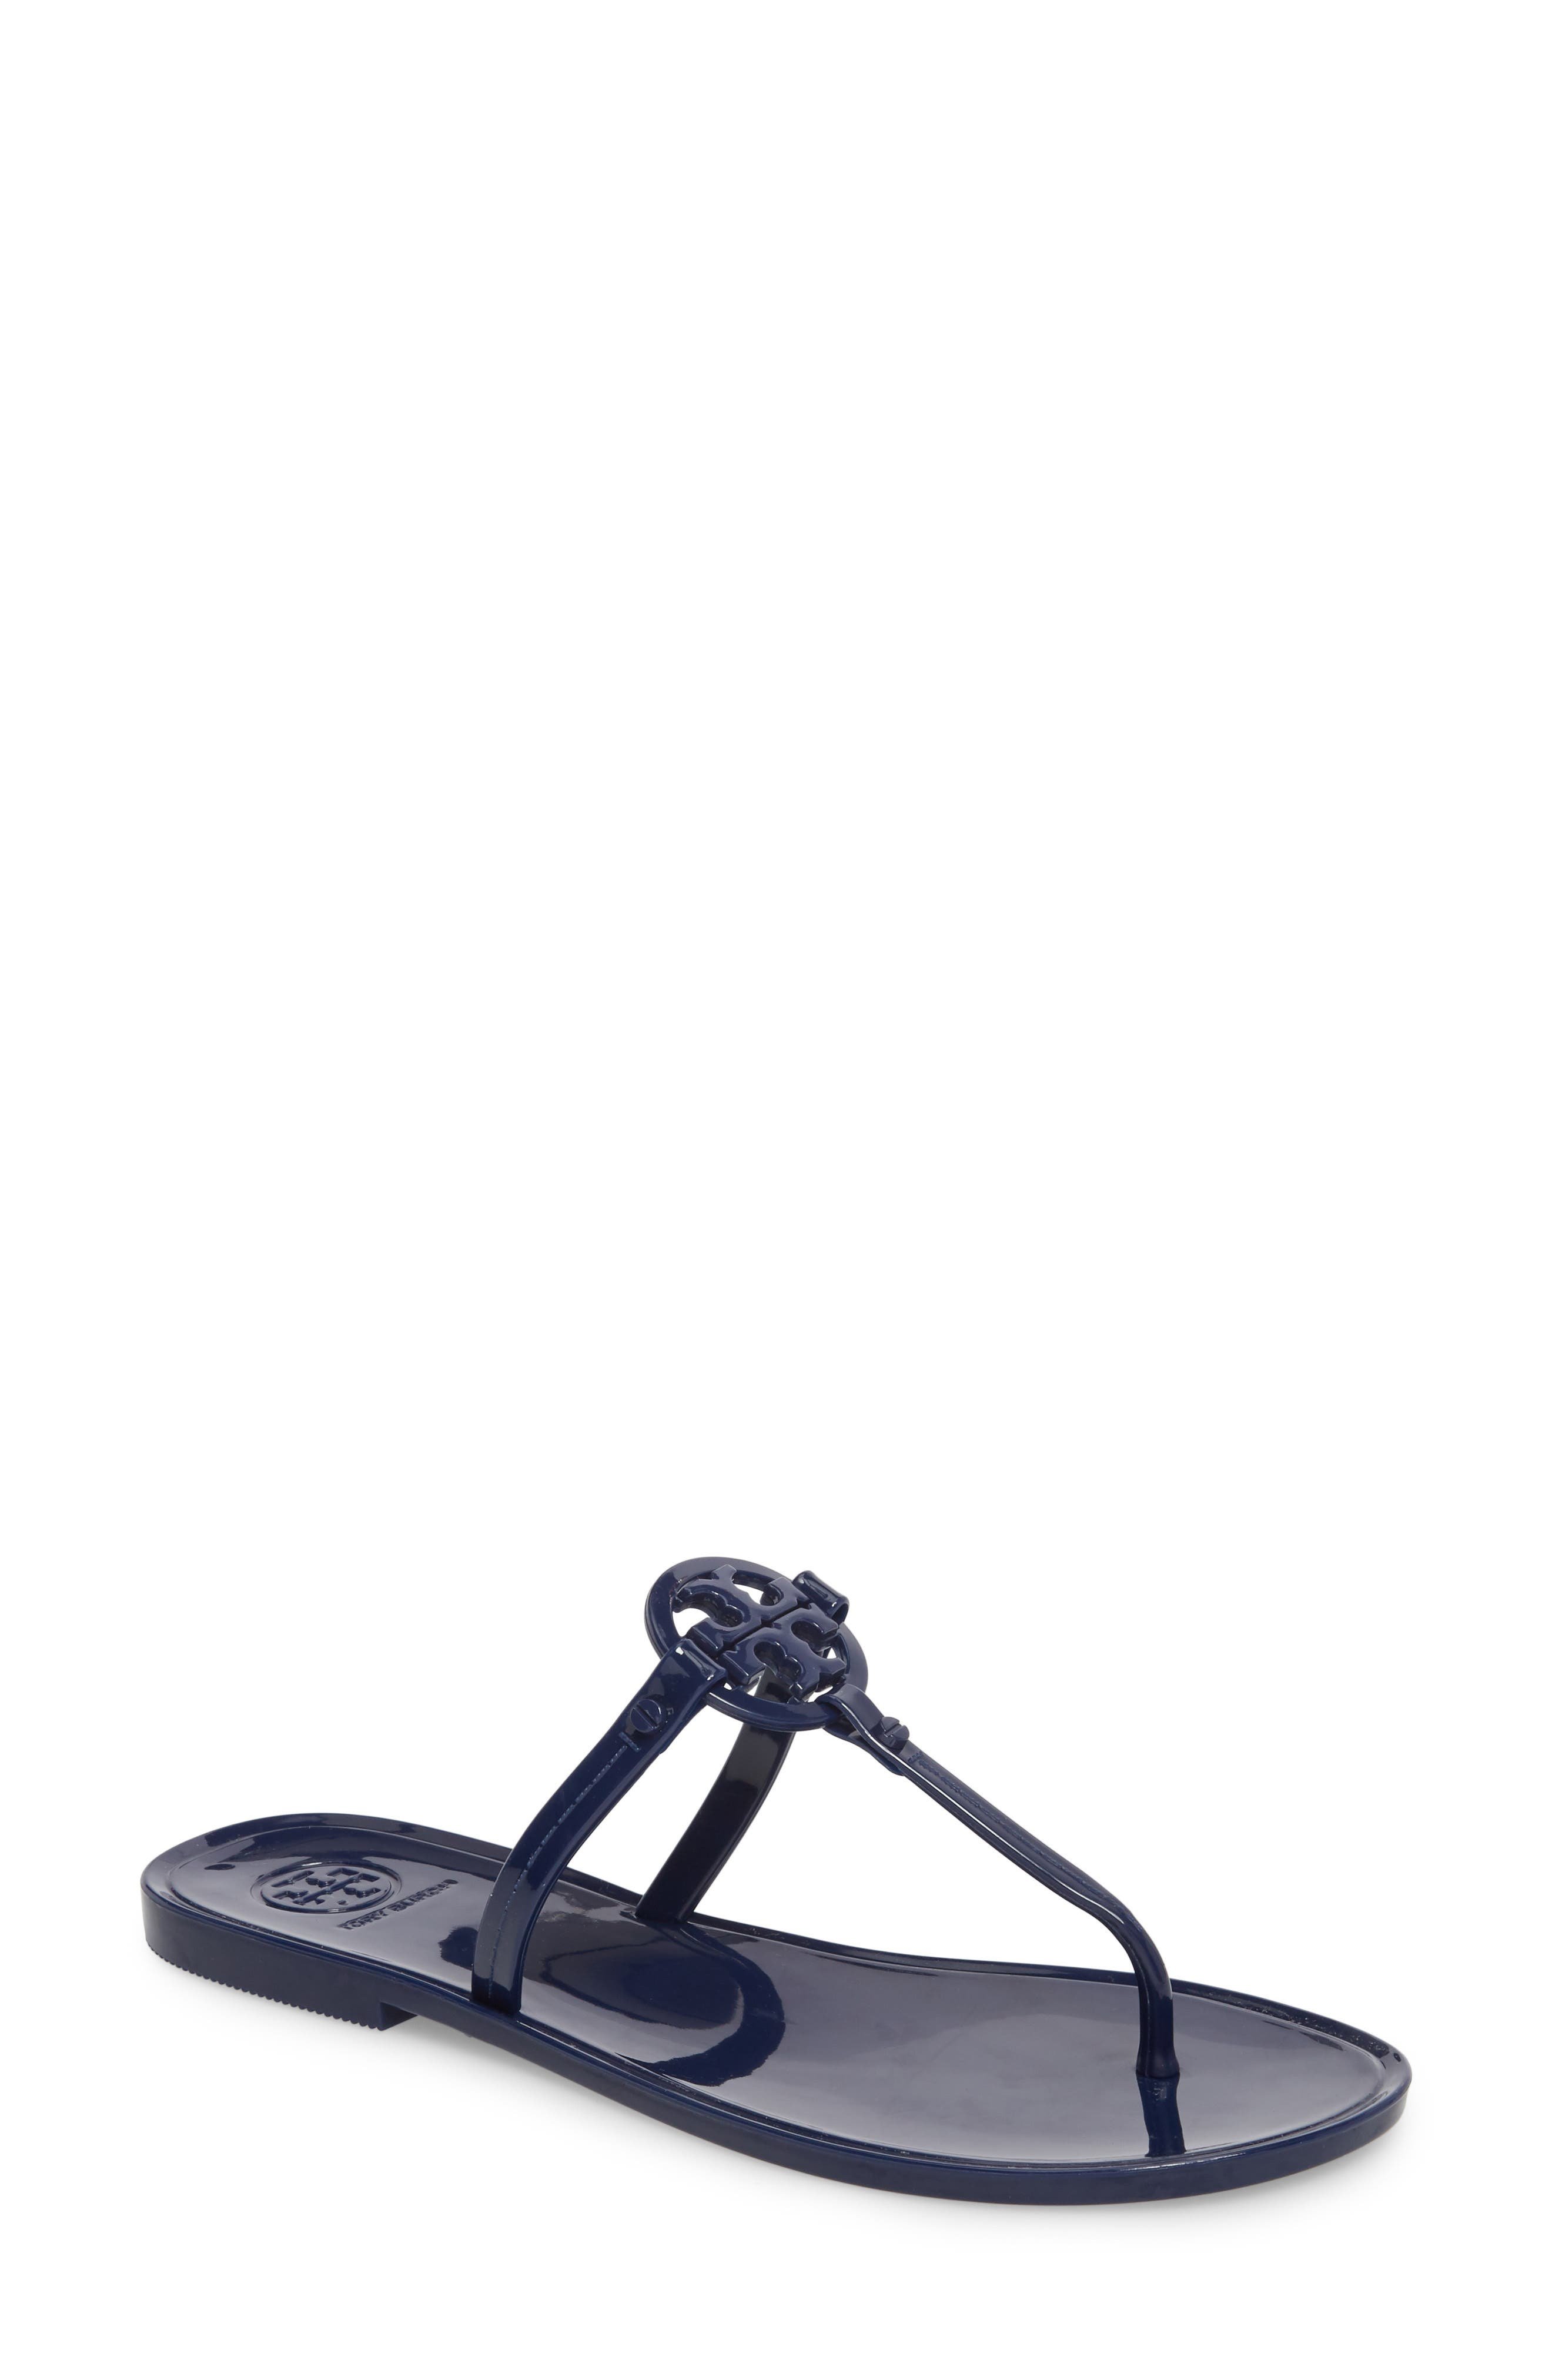 'Mini Miller' Flat Sandal,                             Main thumbnail 1, color,                             BRIGHT INDIGO